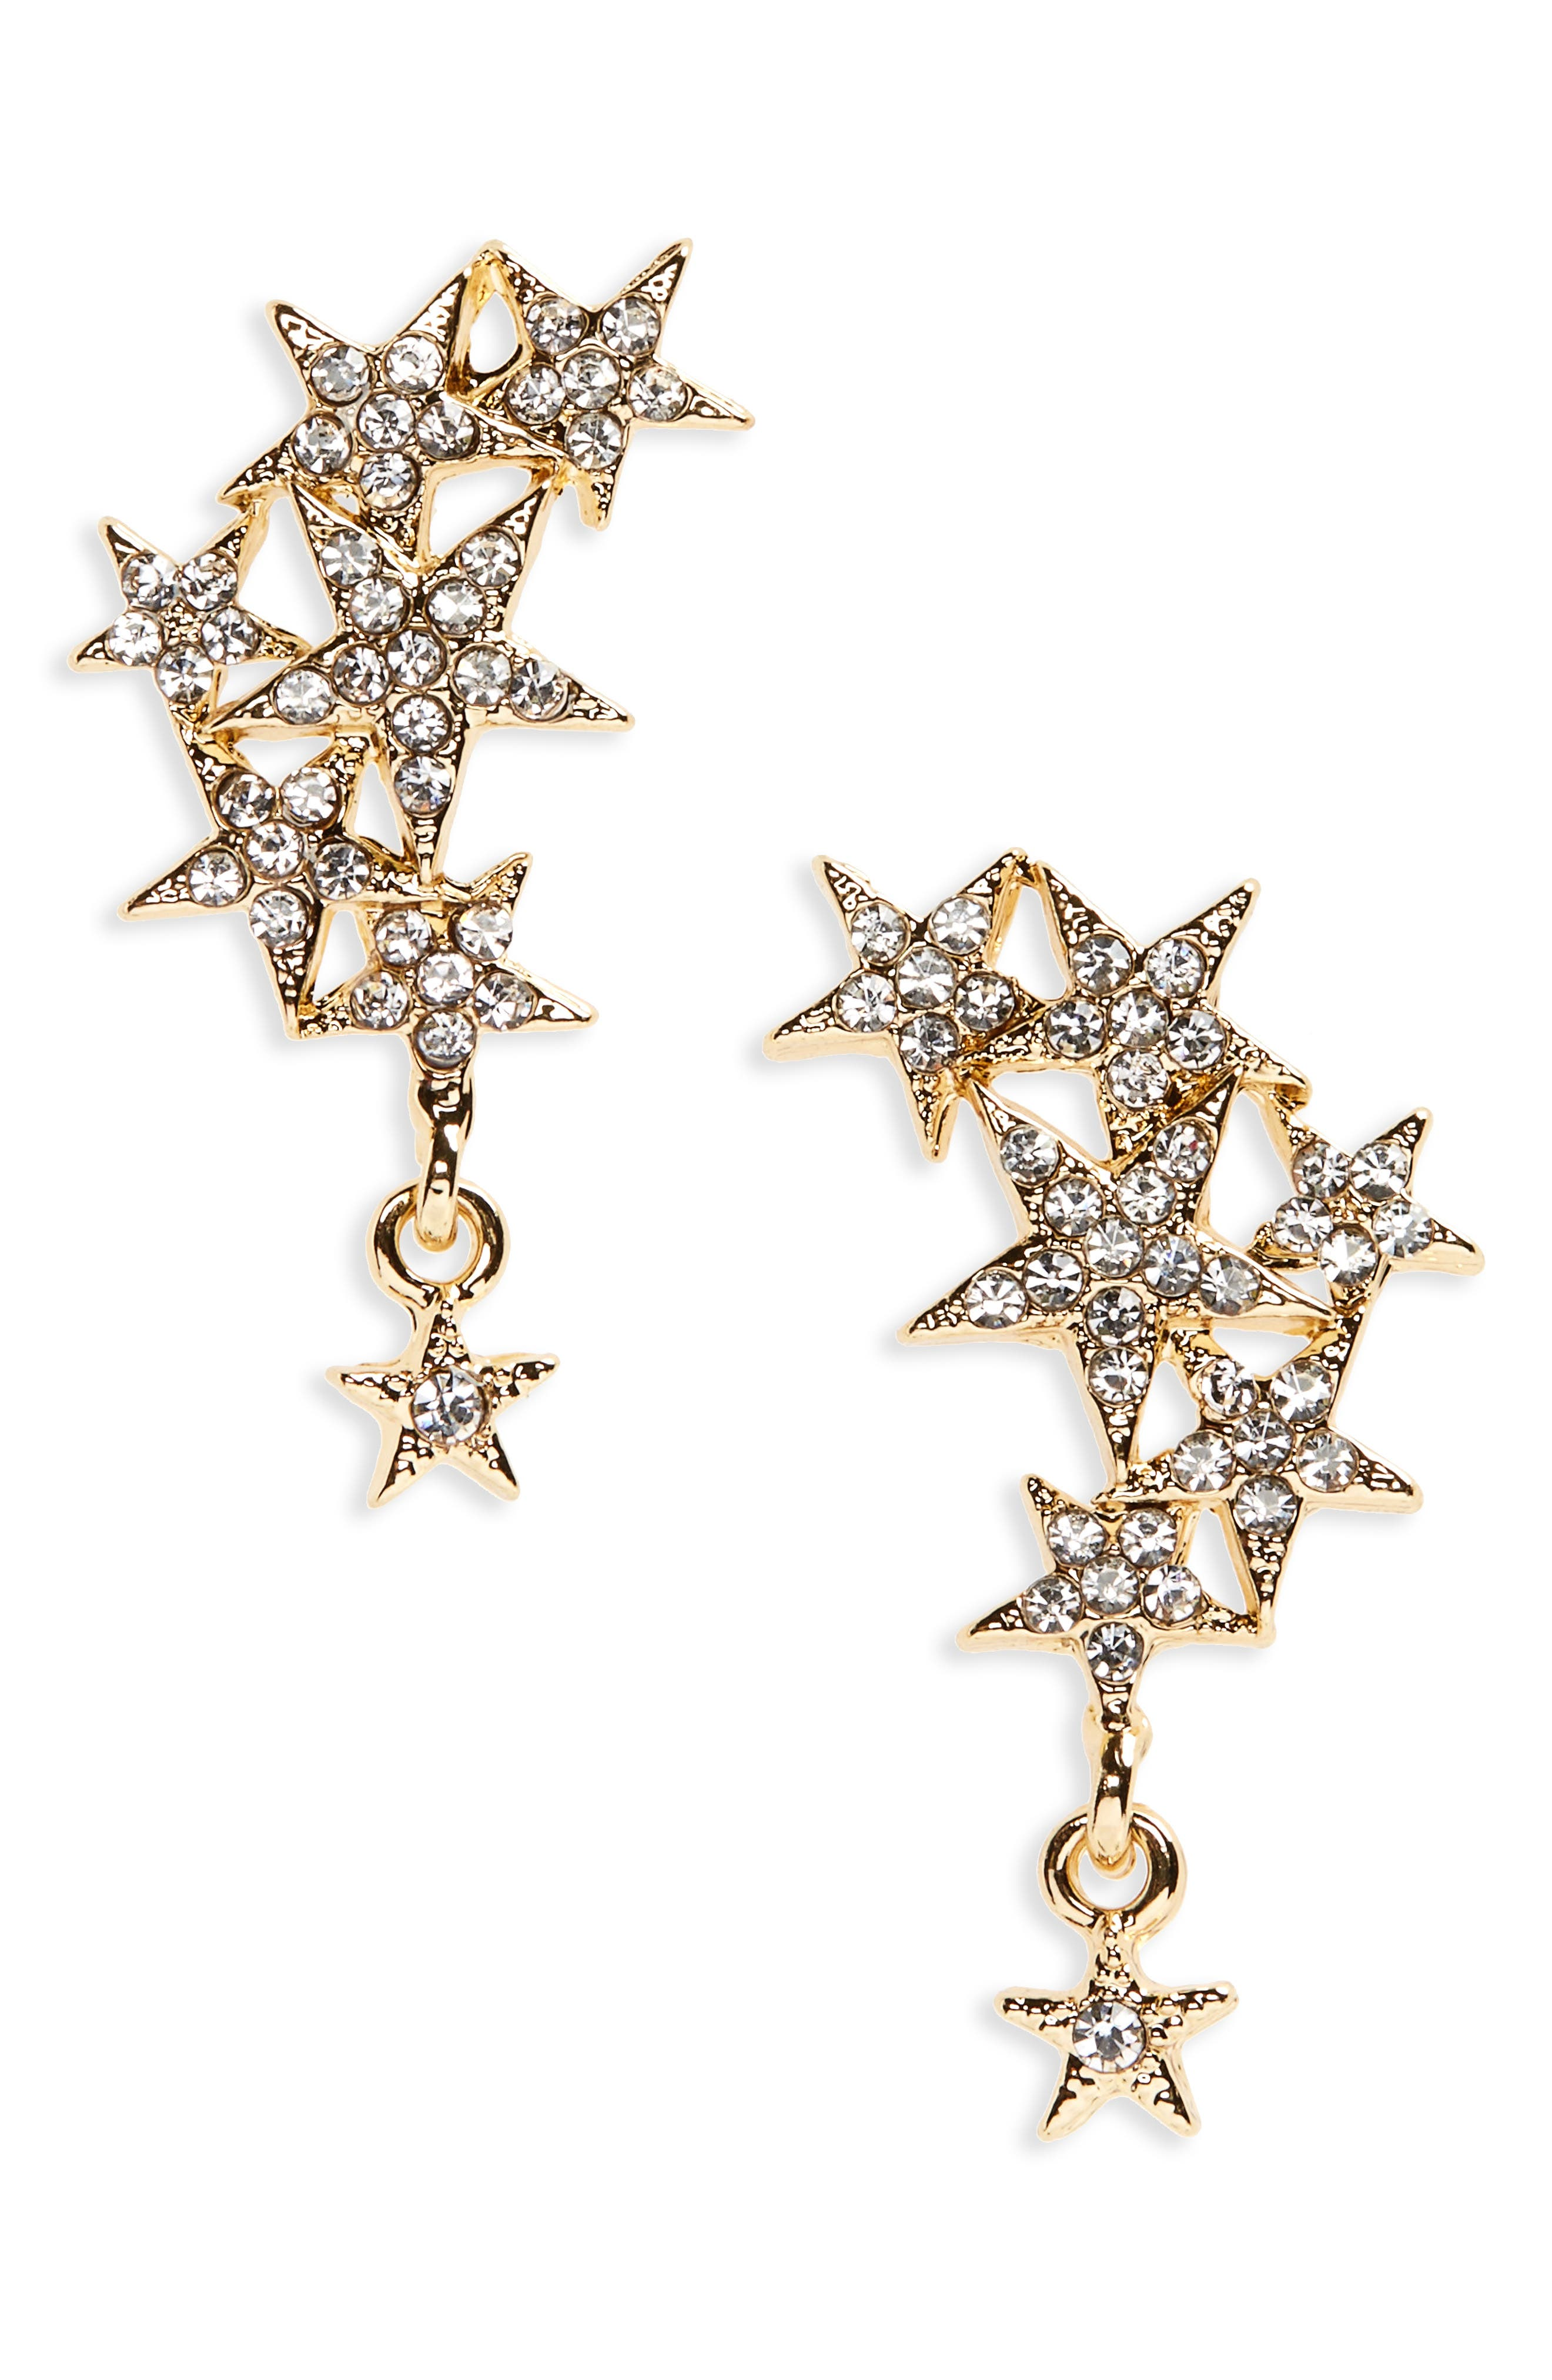 Crystal Star Cluster Statement Earrings,                         Main,                         color, Gold